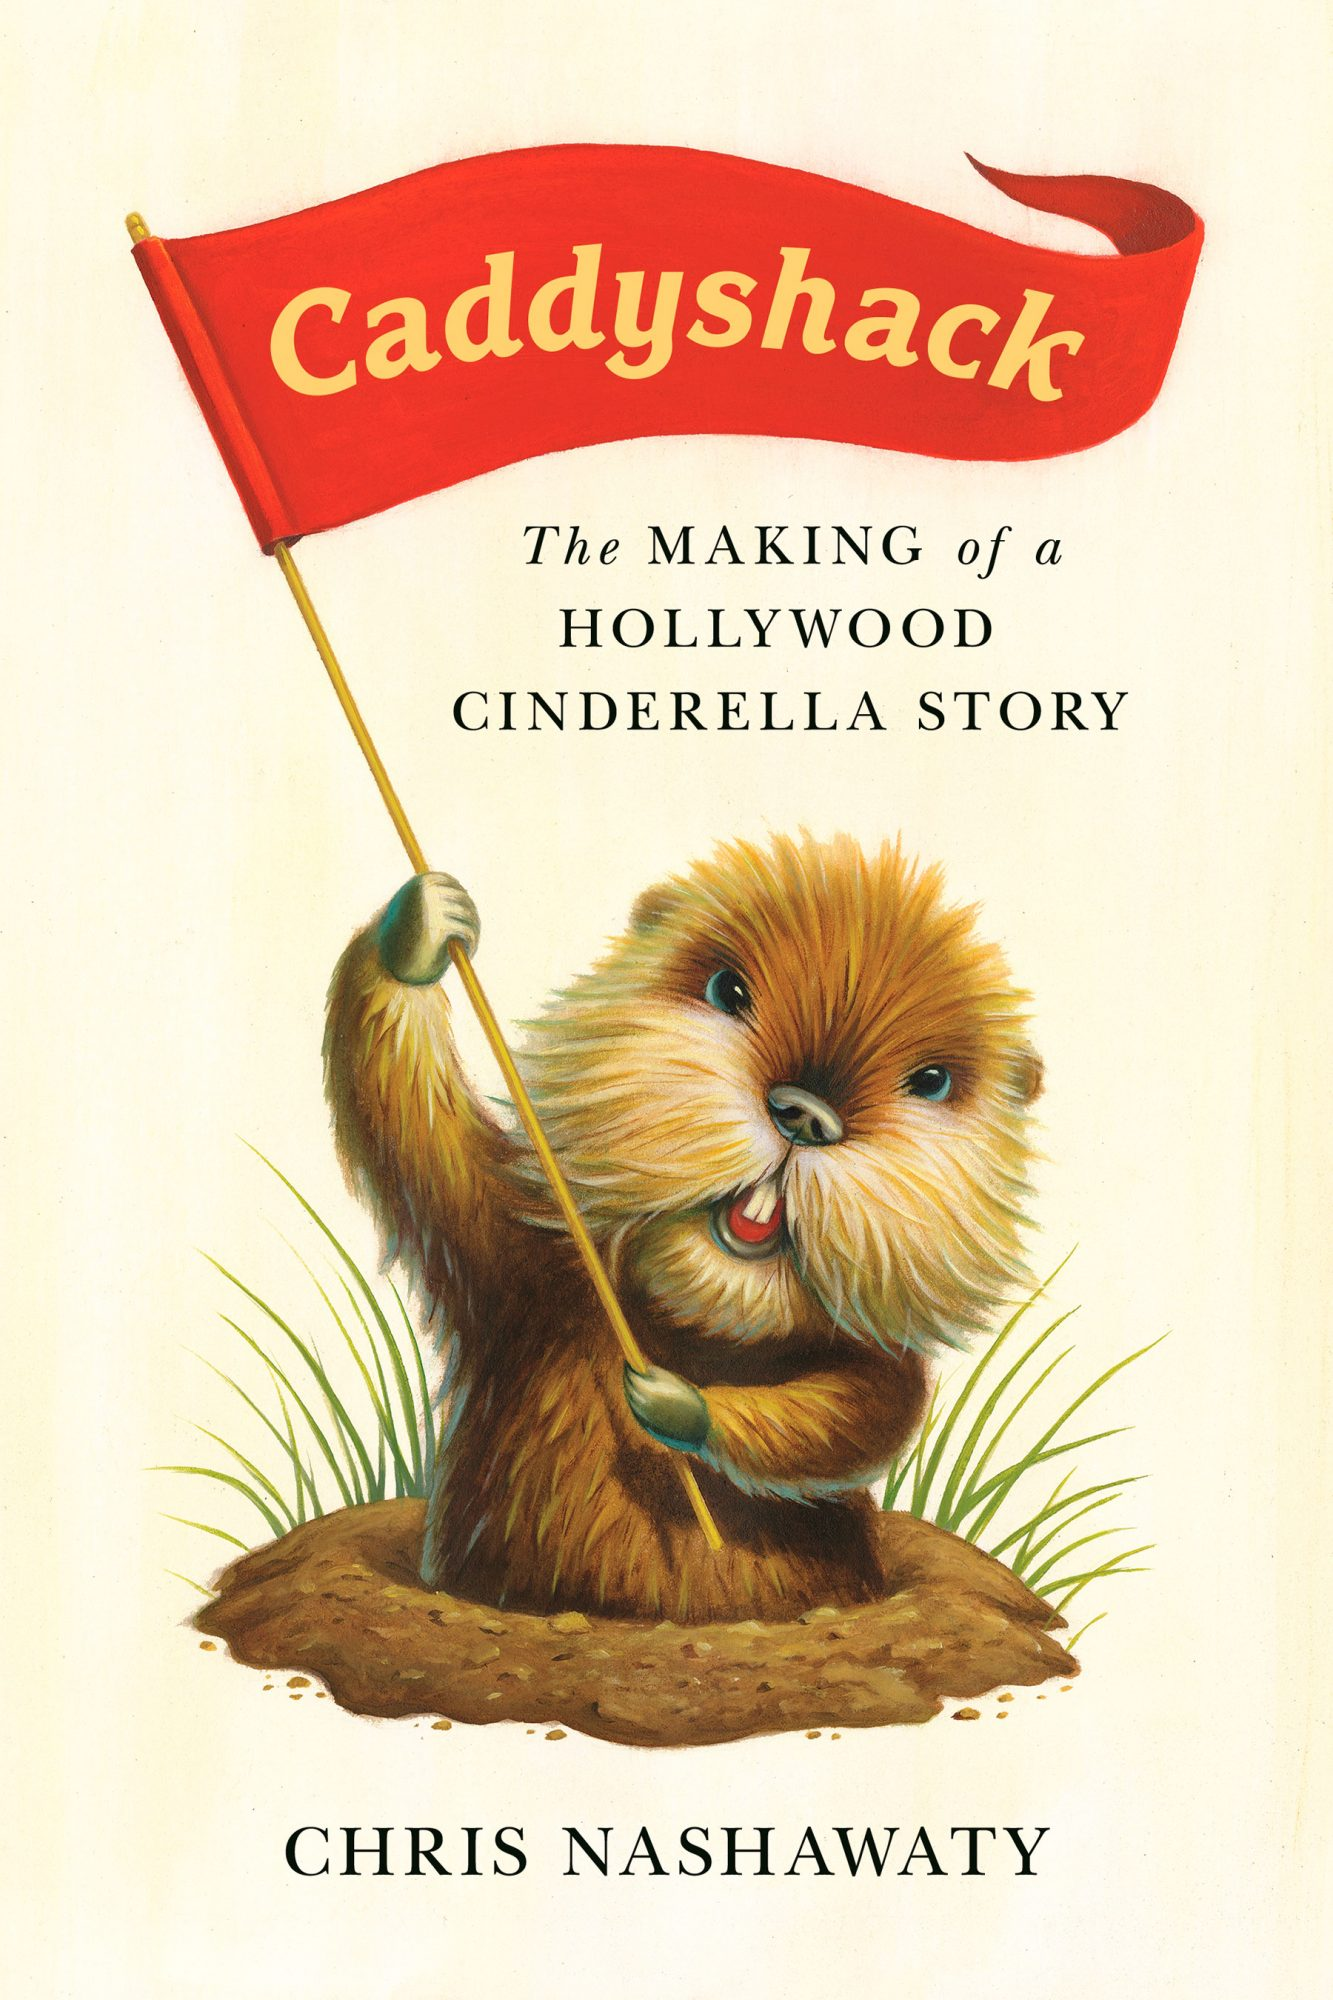 Caddyshack, by Chris Nashawaty